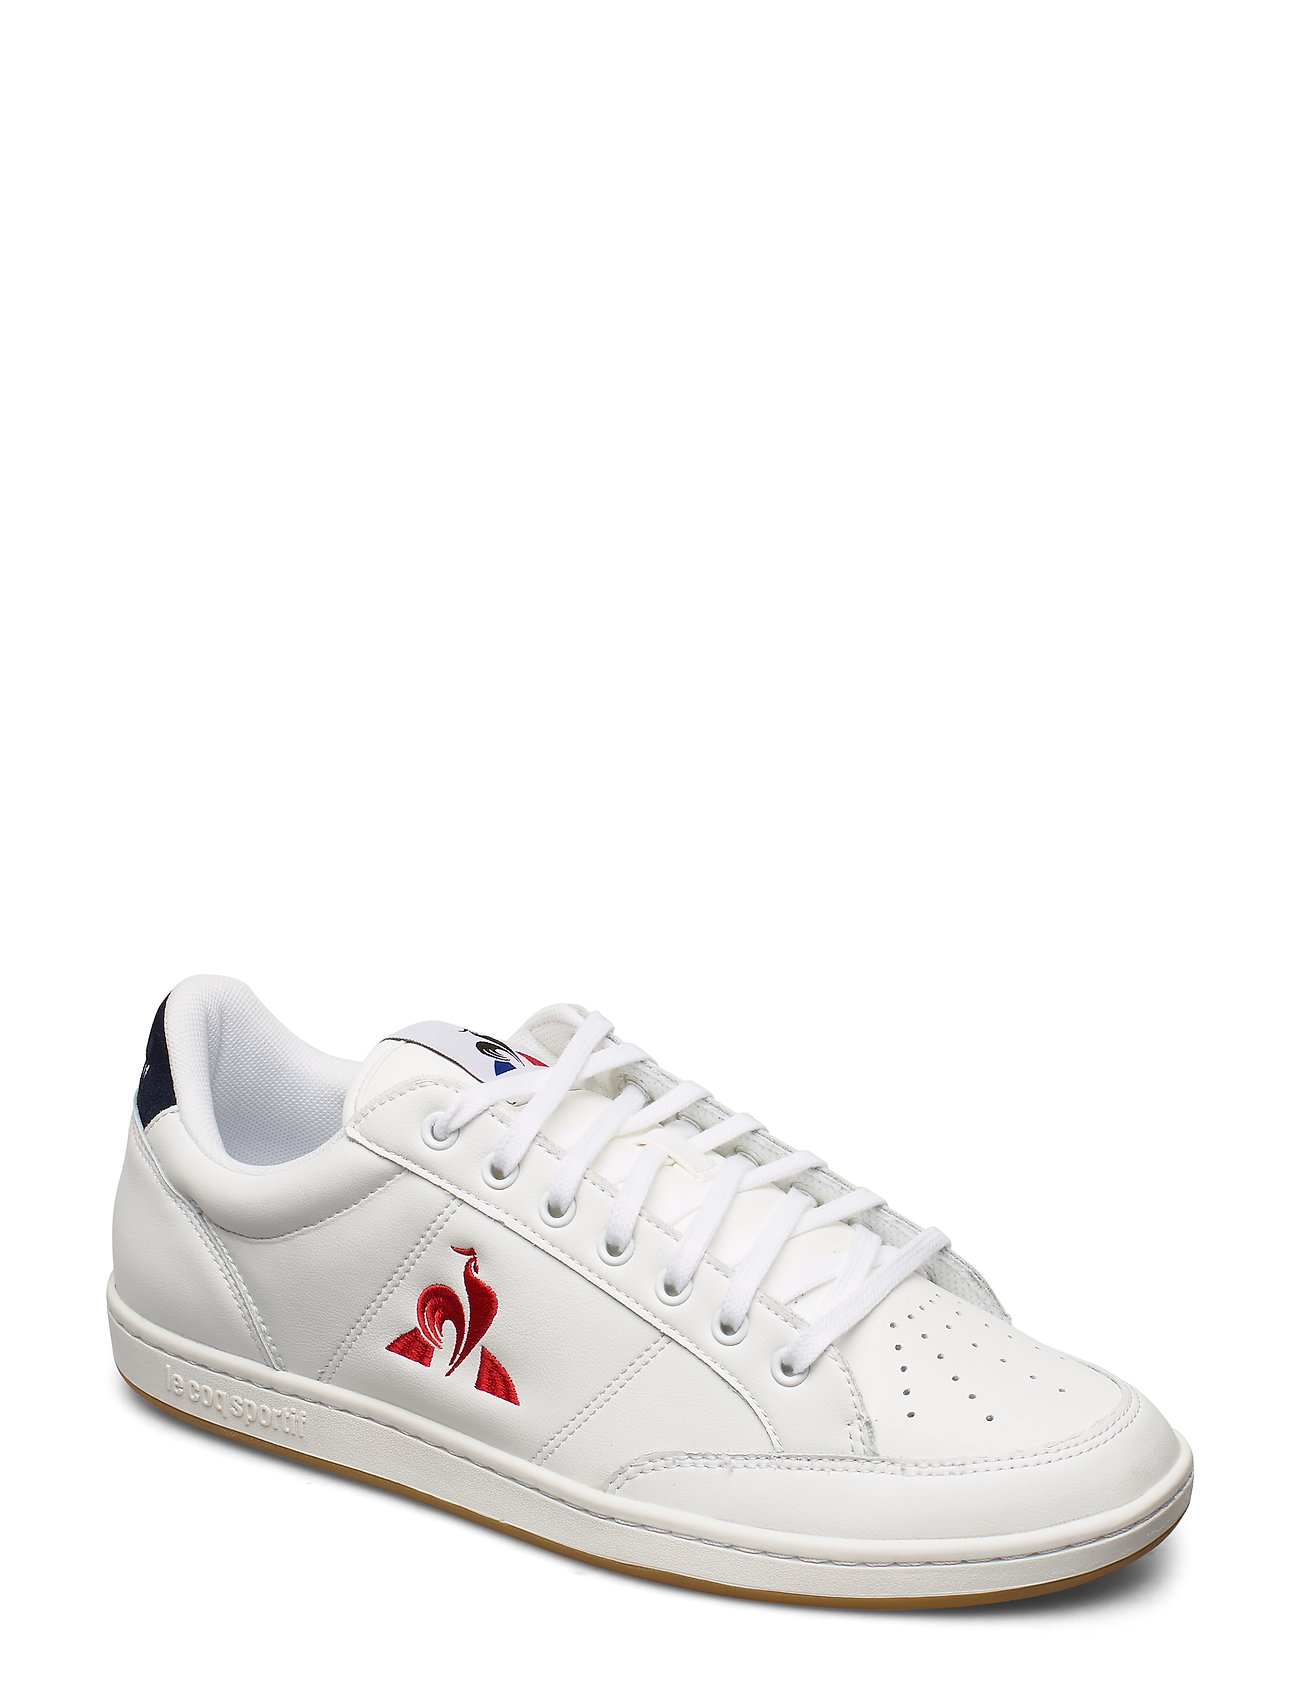 Image of Court Clay Bold Low-top Sneakers Hvid Le Coq Sportif (3327444385)